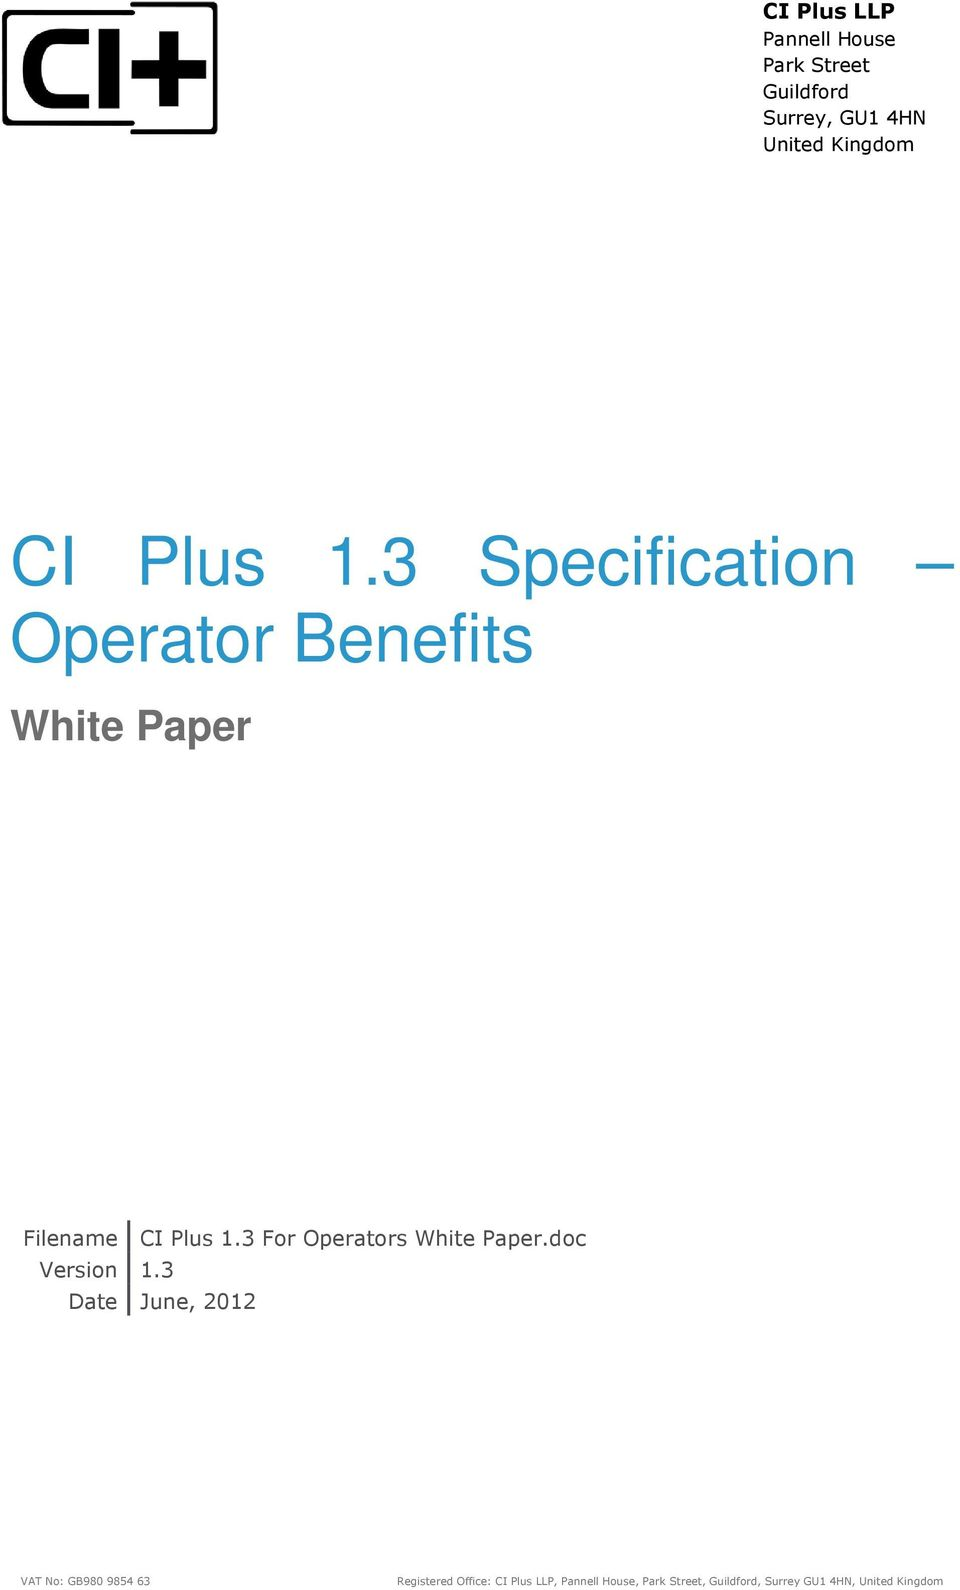 Filename 3 For Operators White Paper.